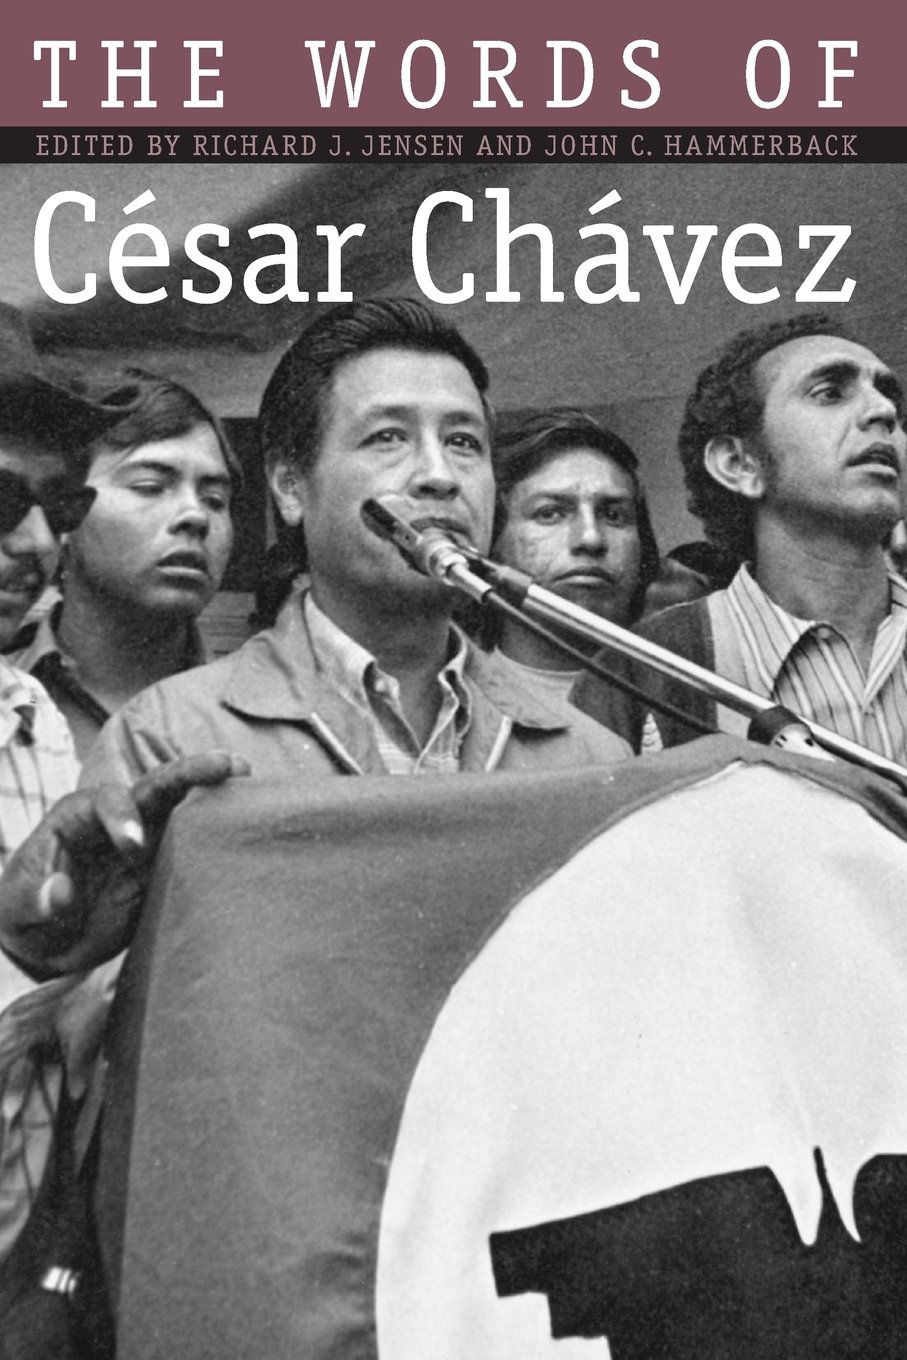 Essay Format Example For High School The Words Of Csar Chvez By Cesar Chavez Thesis In An Essay also How To Write A Thesis Statement For A Essay Home   Cesar Chavez Essay Project  Libraries At The  Federalism Essay Paper